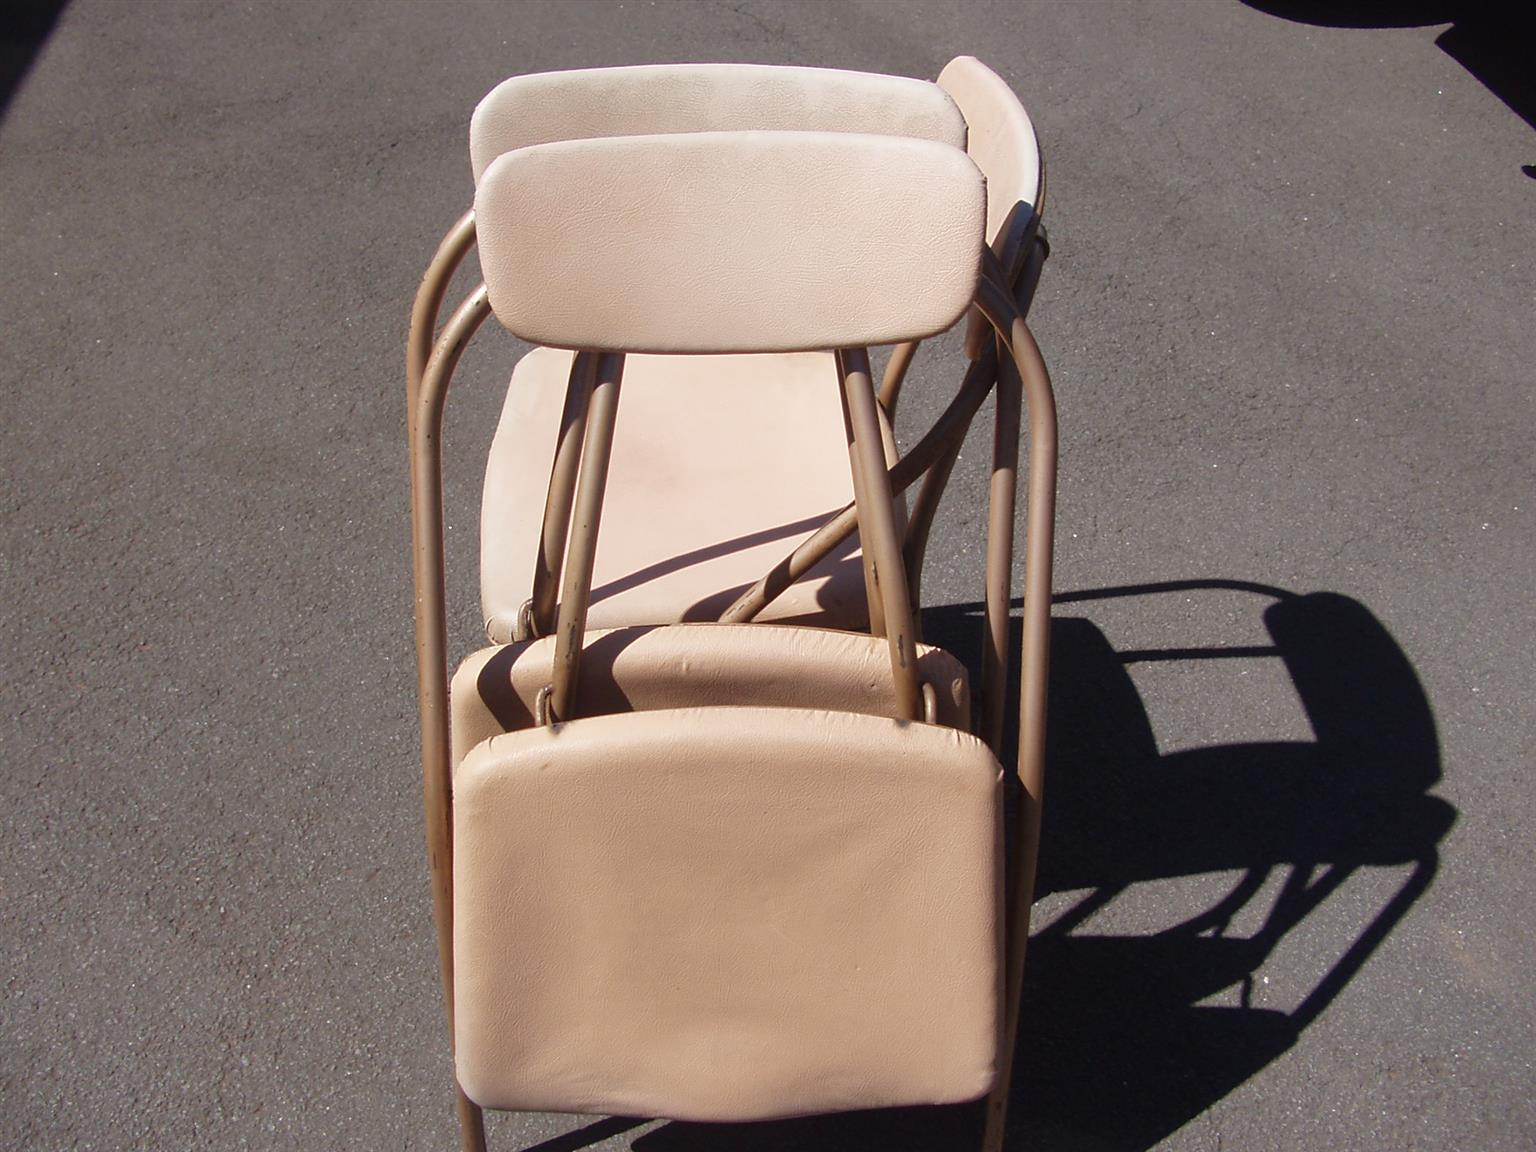 Garden / Picnic Fold-up Padded Chairs - 3 chairs on metal frames